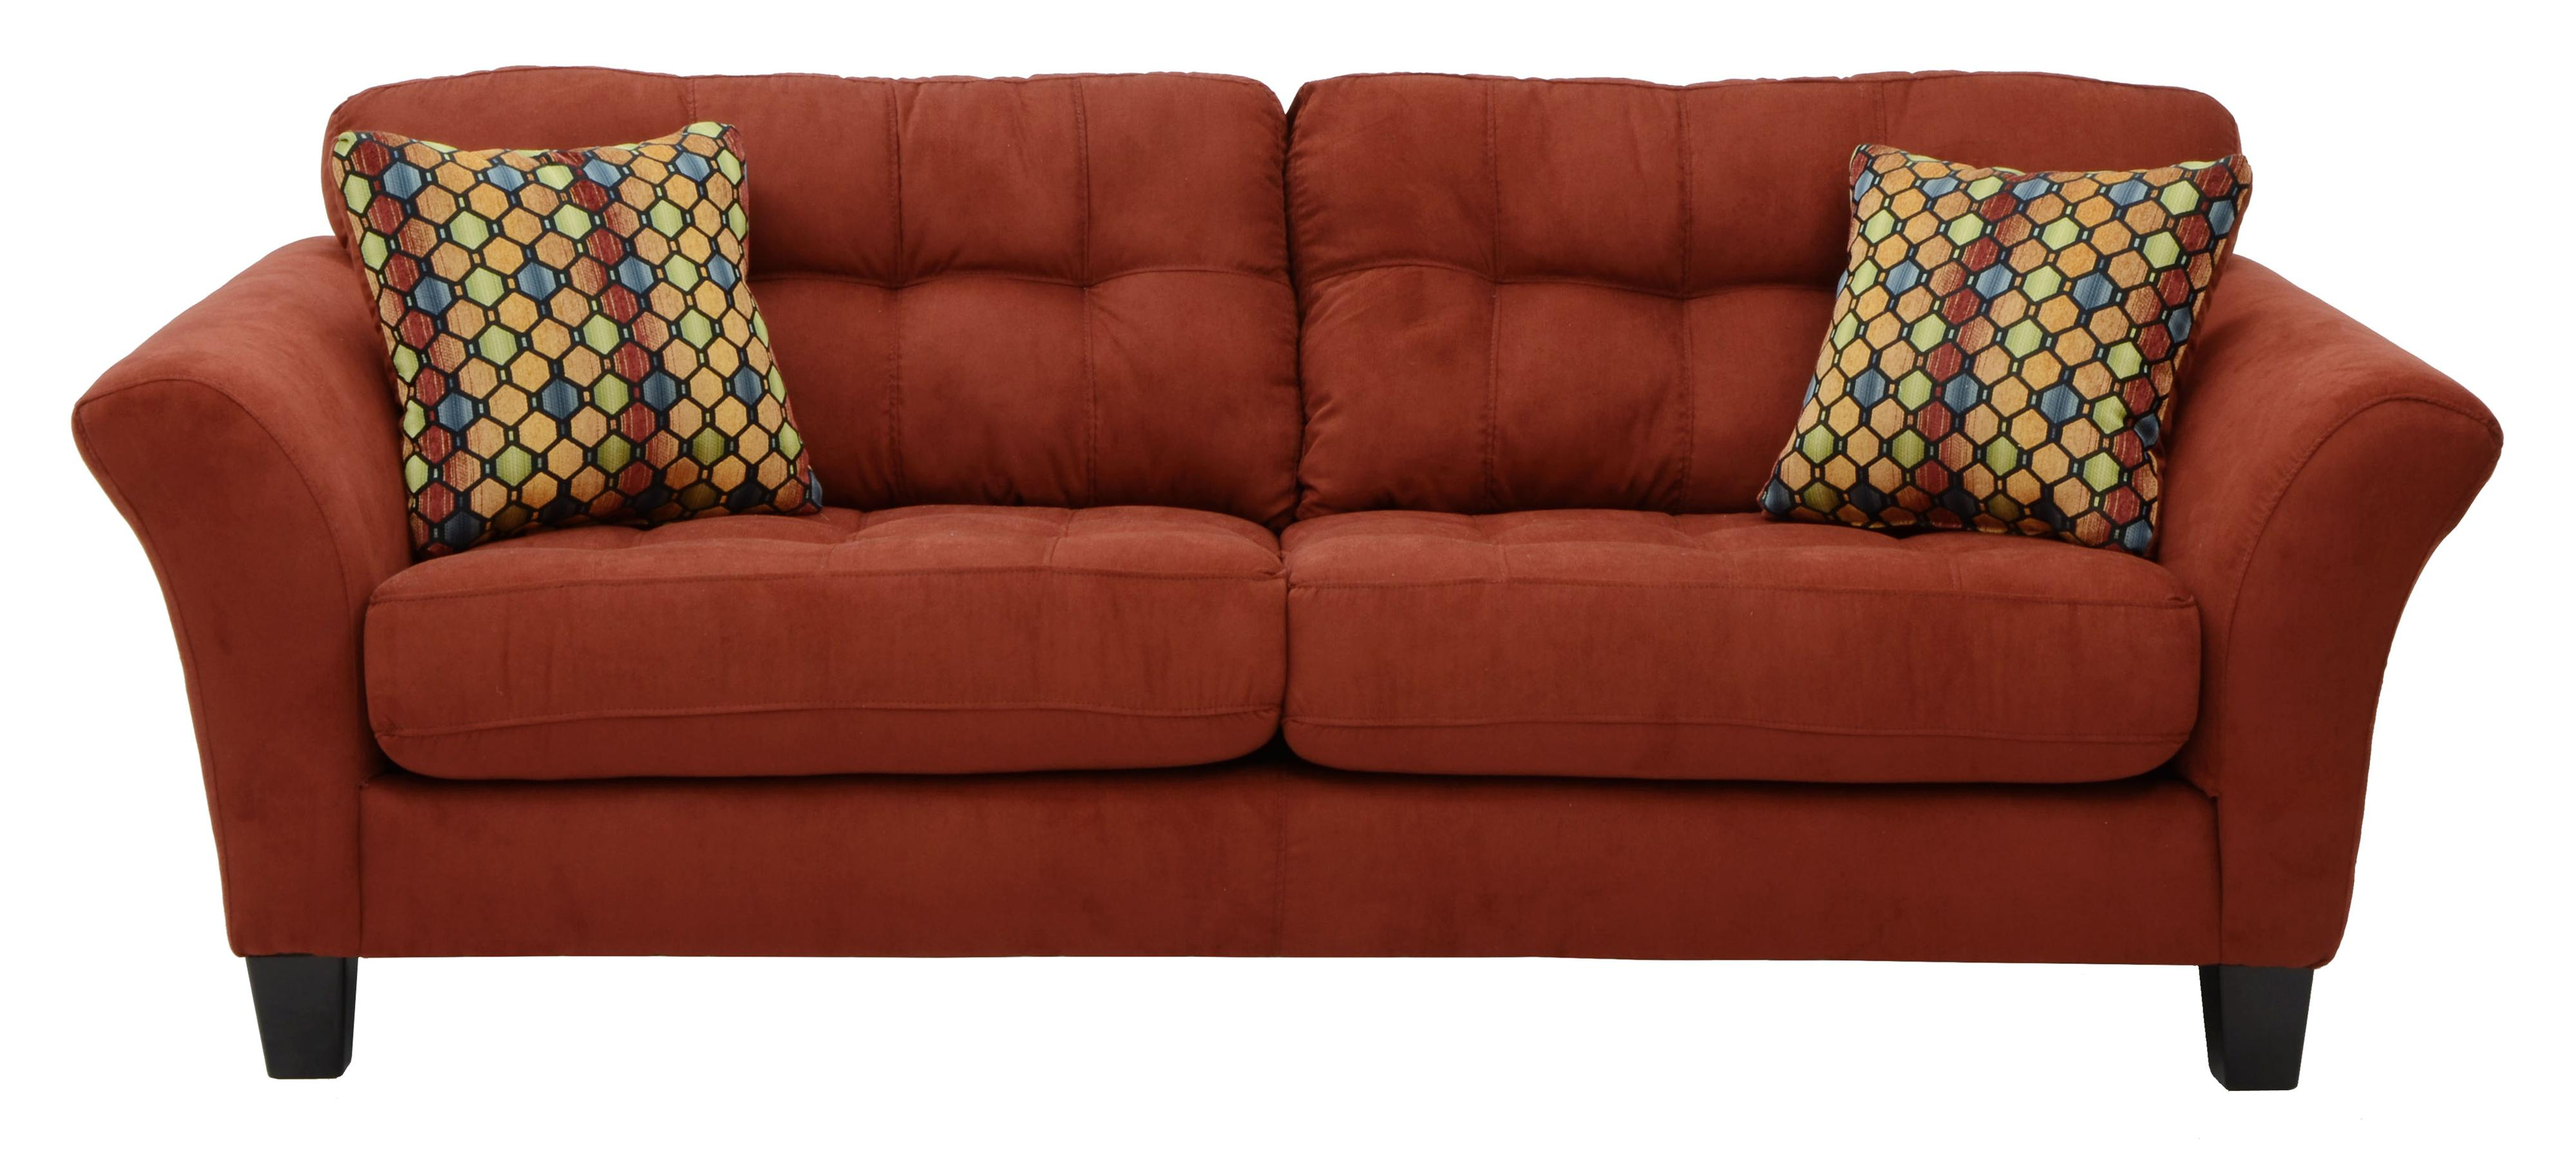 Merveilleux Sofa With 2 Seats And Tufted Back Cushions